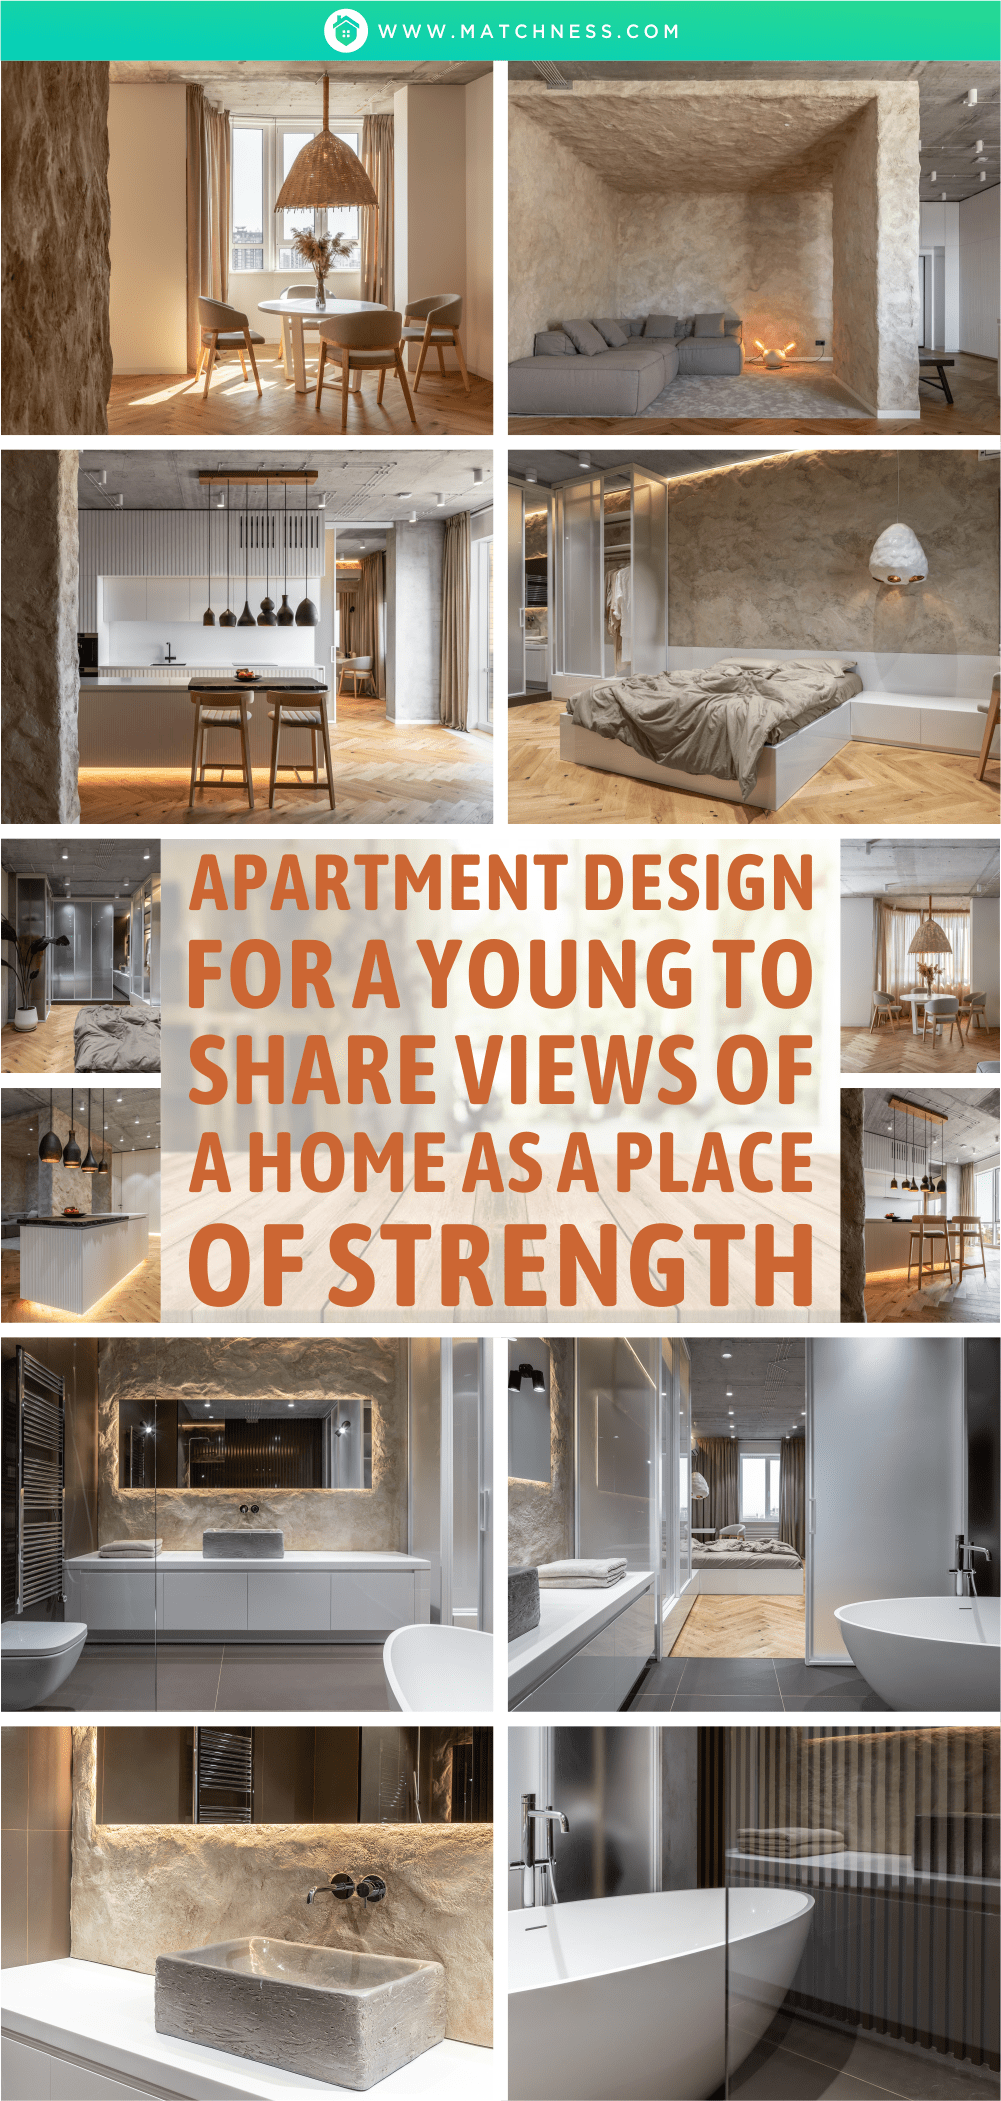 Apartment-design-for-a-young-to-share-views-of-a-home-as-a-place-of-strength1